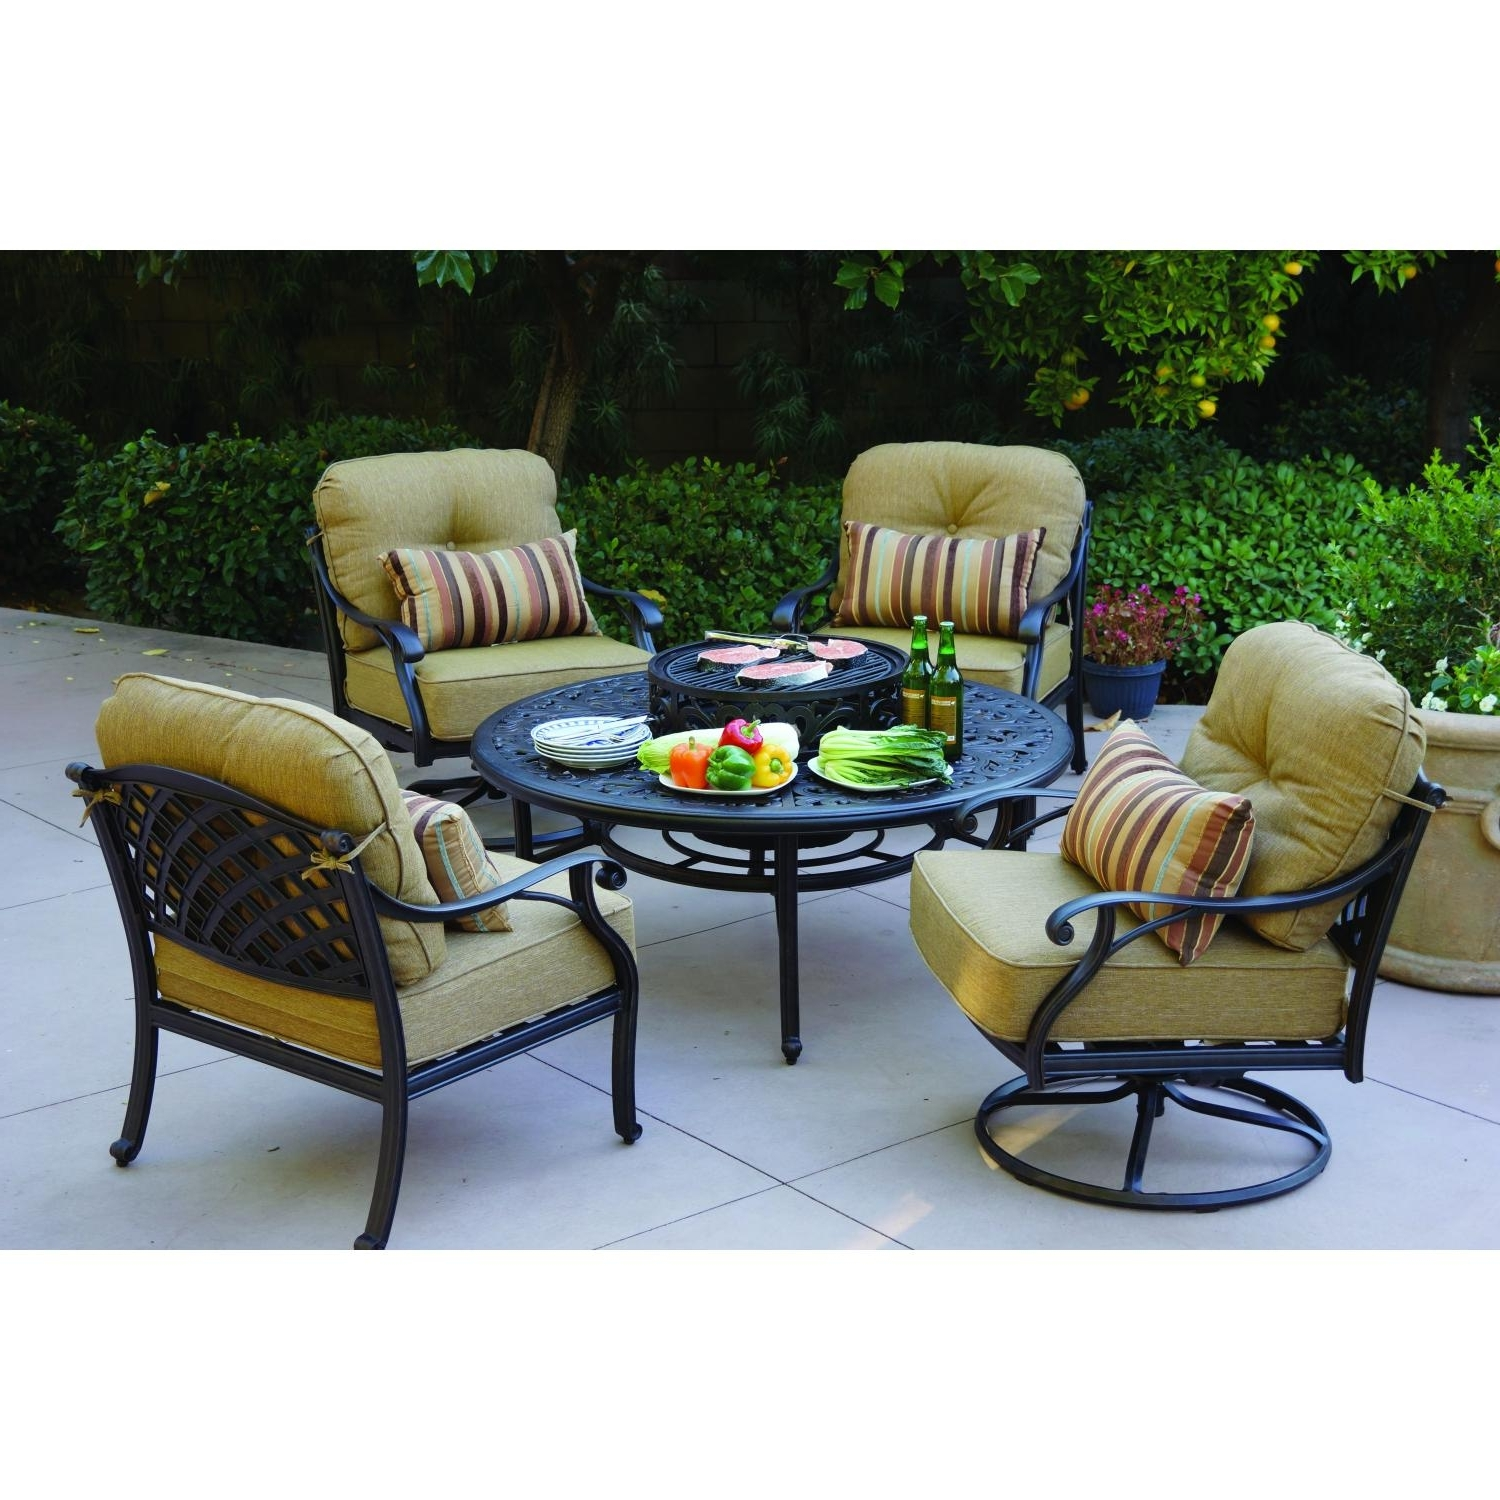 Trendy Patio Furniture Conversation Sets With Fire Pit Intended For Beautiful Round Propane Fire Pit Table And Chairs Conversation Sets (View 14 of 15)